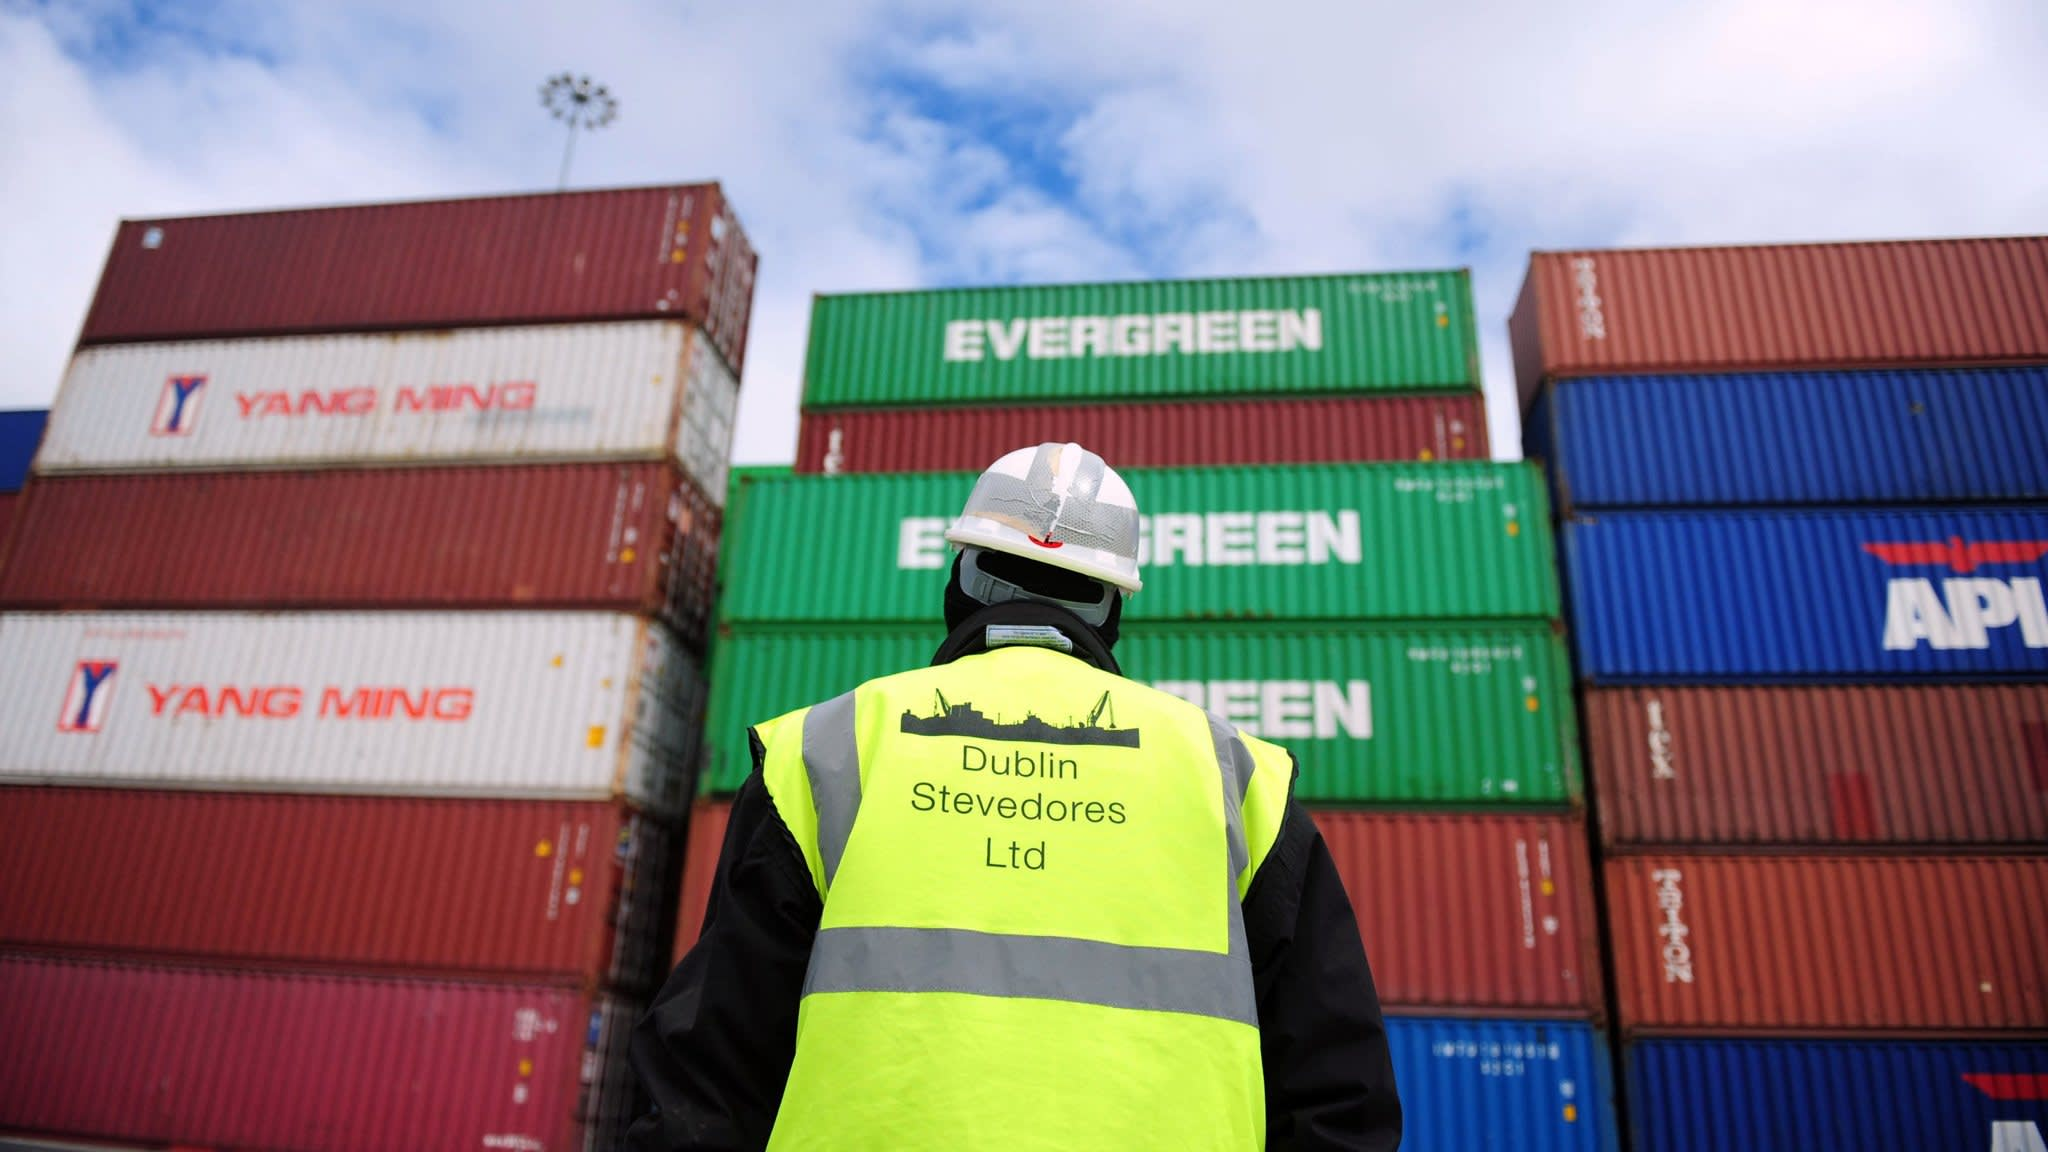 Shipping groups boost Ireland-EU routes ahead of Brexit